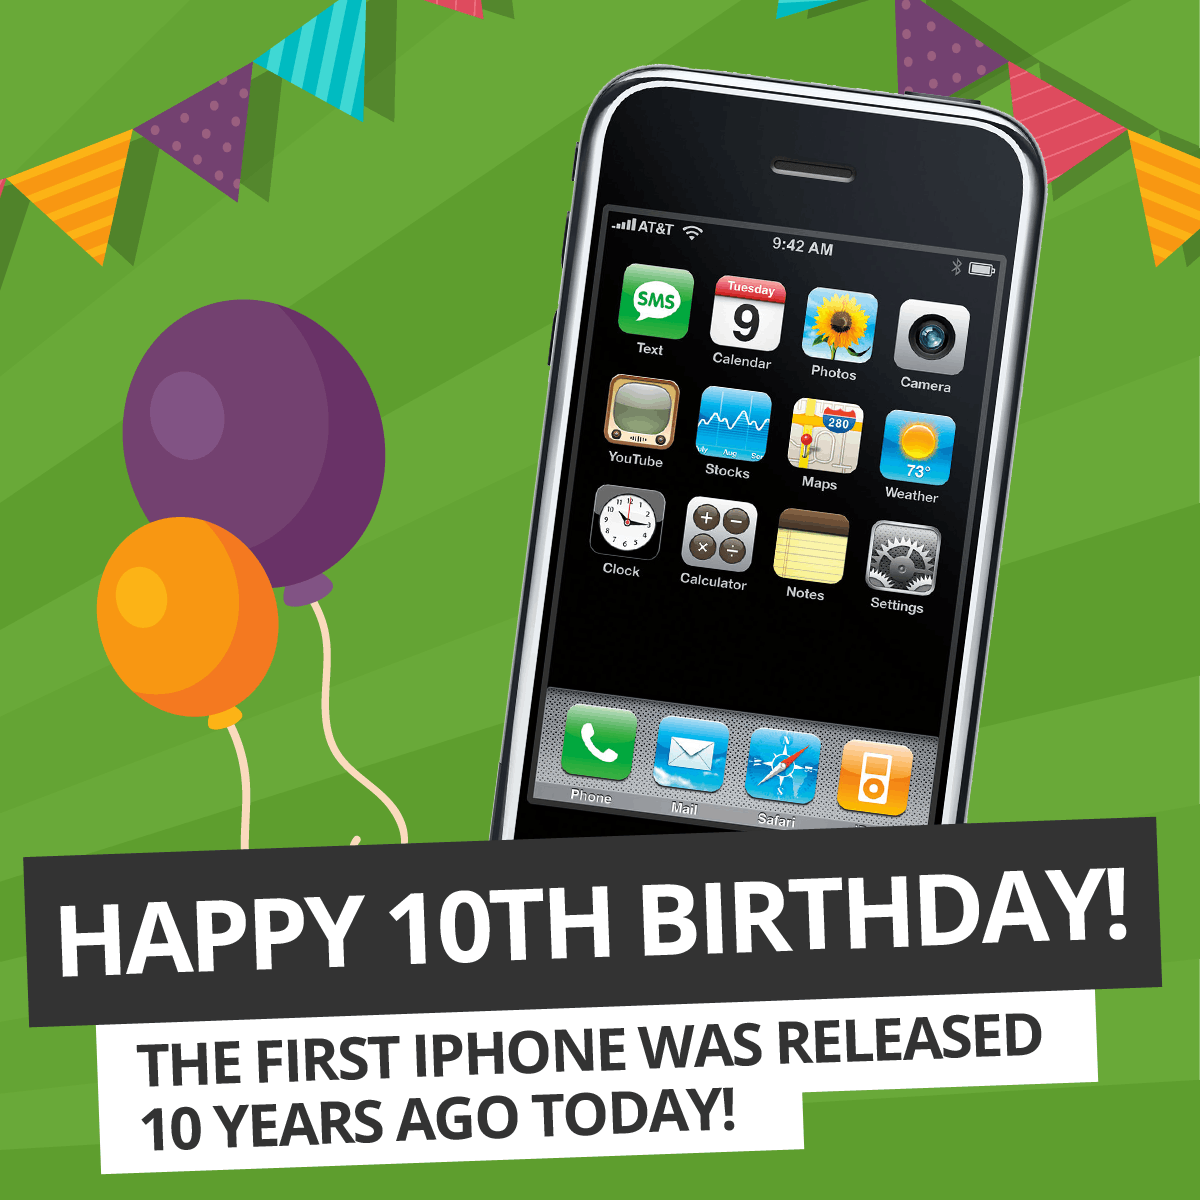 Happy 10th Birthday to the iPhone